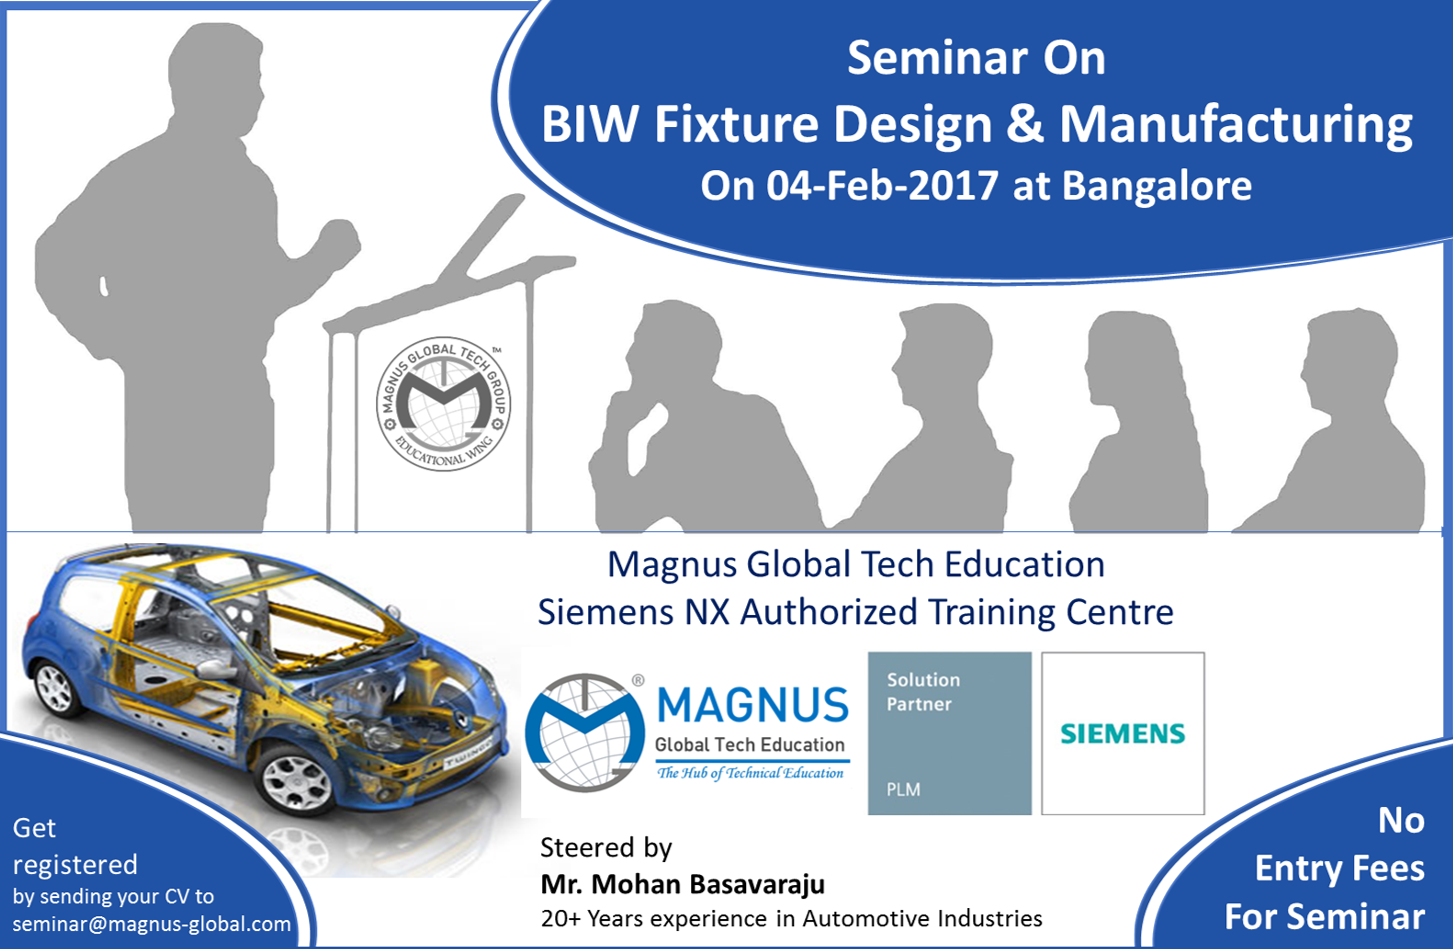 Seminar On BIW Fixture Design Engineering